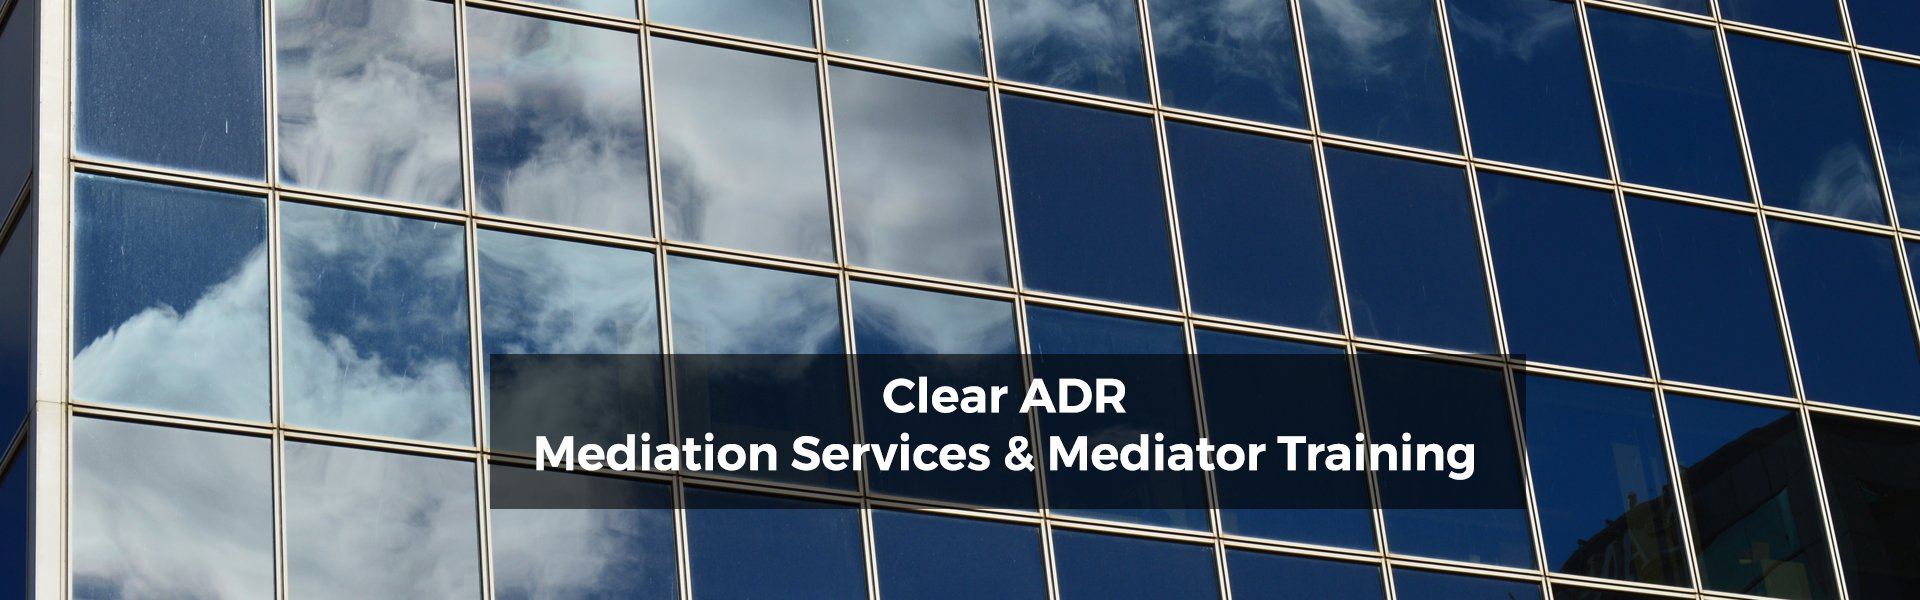 litigation versus adr Many people want to know what litigation is, what the ramifications of litigation are and whether there are any alternatives to litigation generally, litigation is when one party sues, or files a lawsuit, against another party.